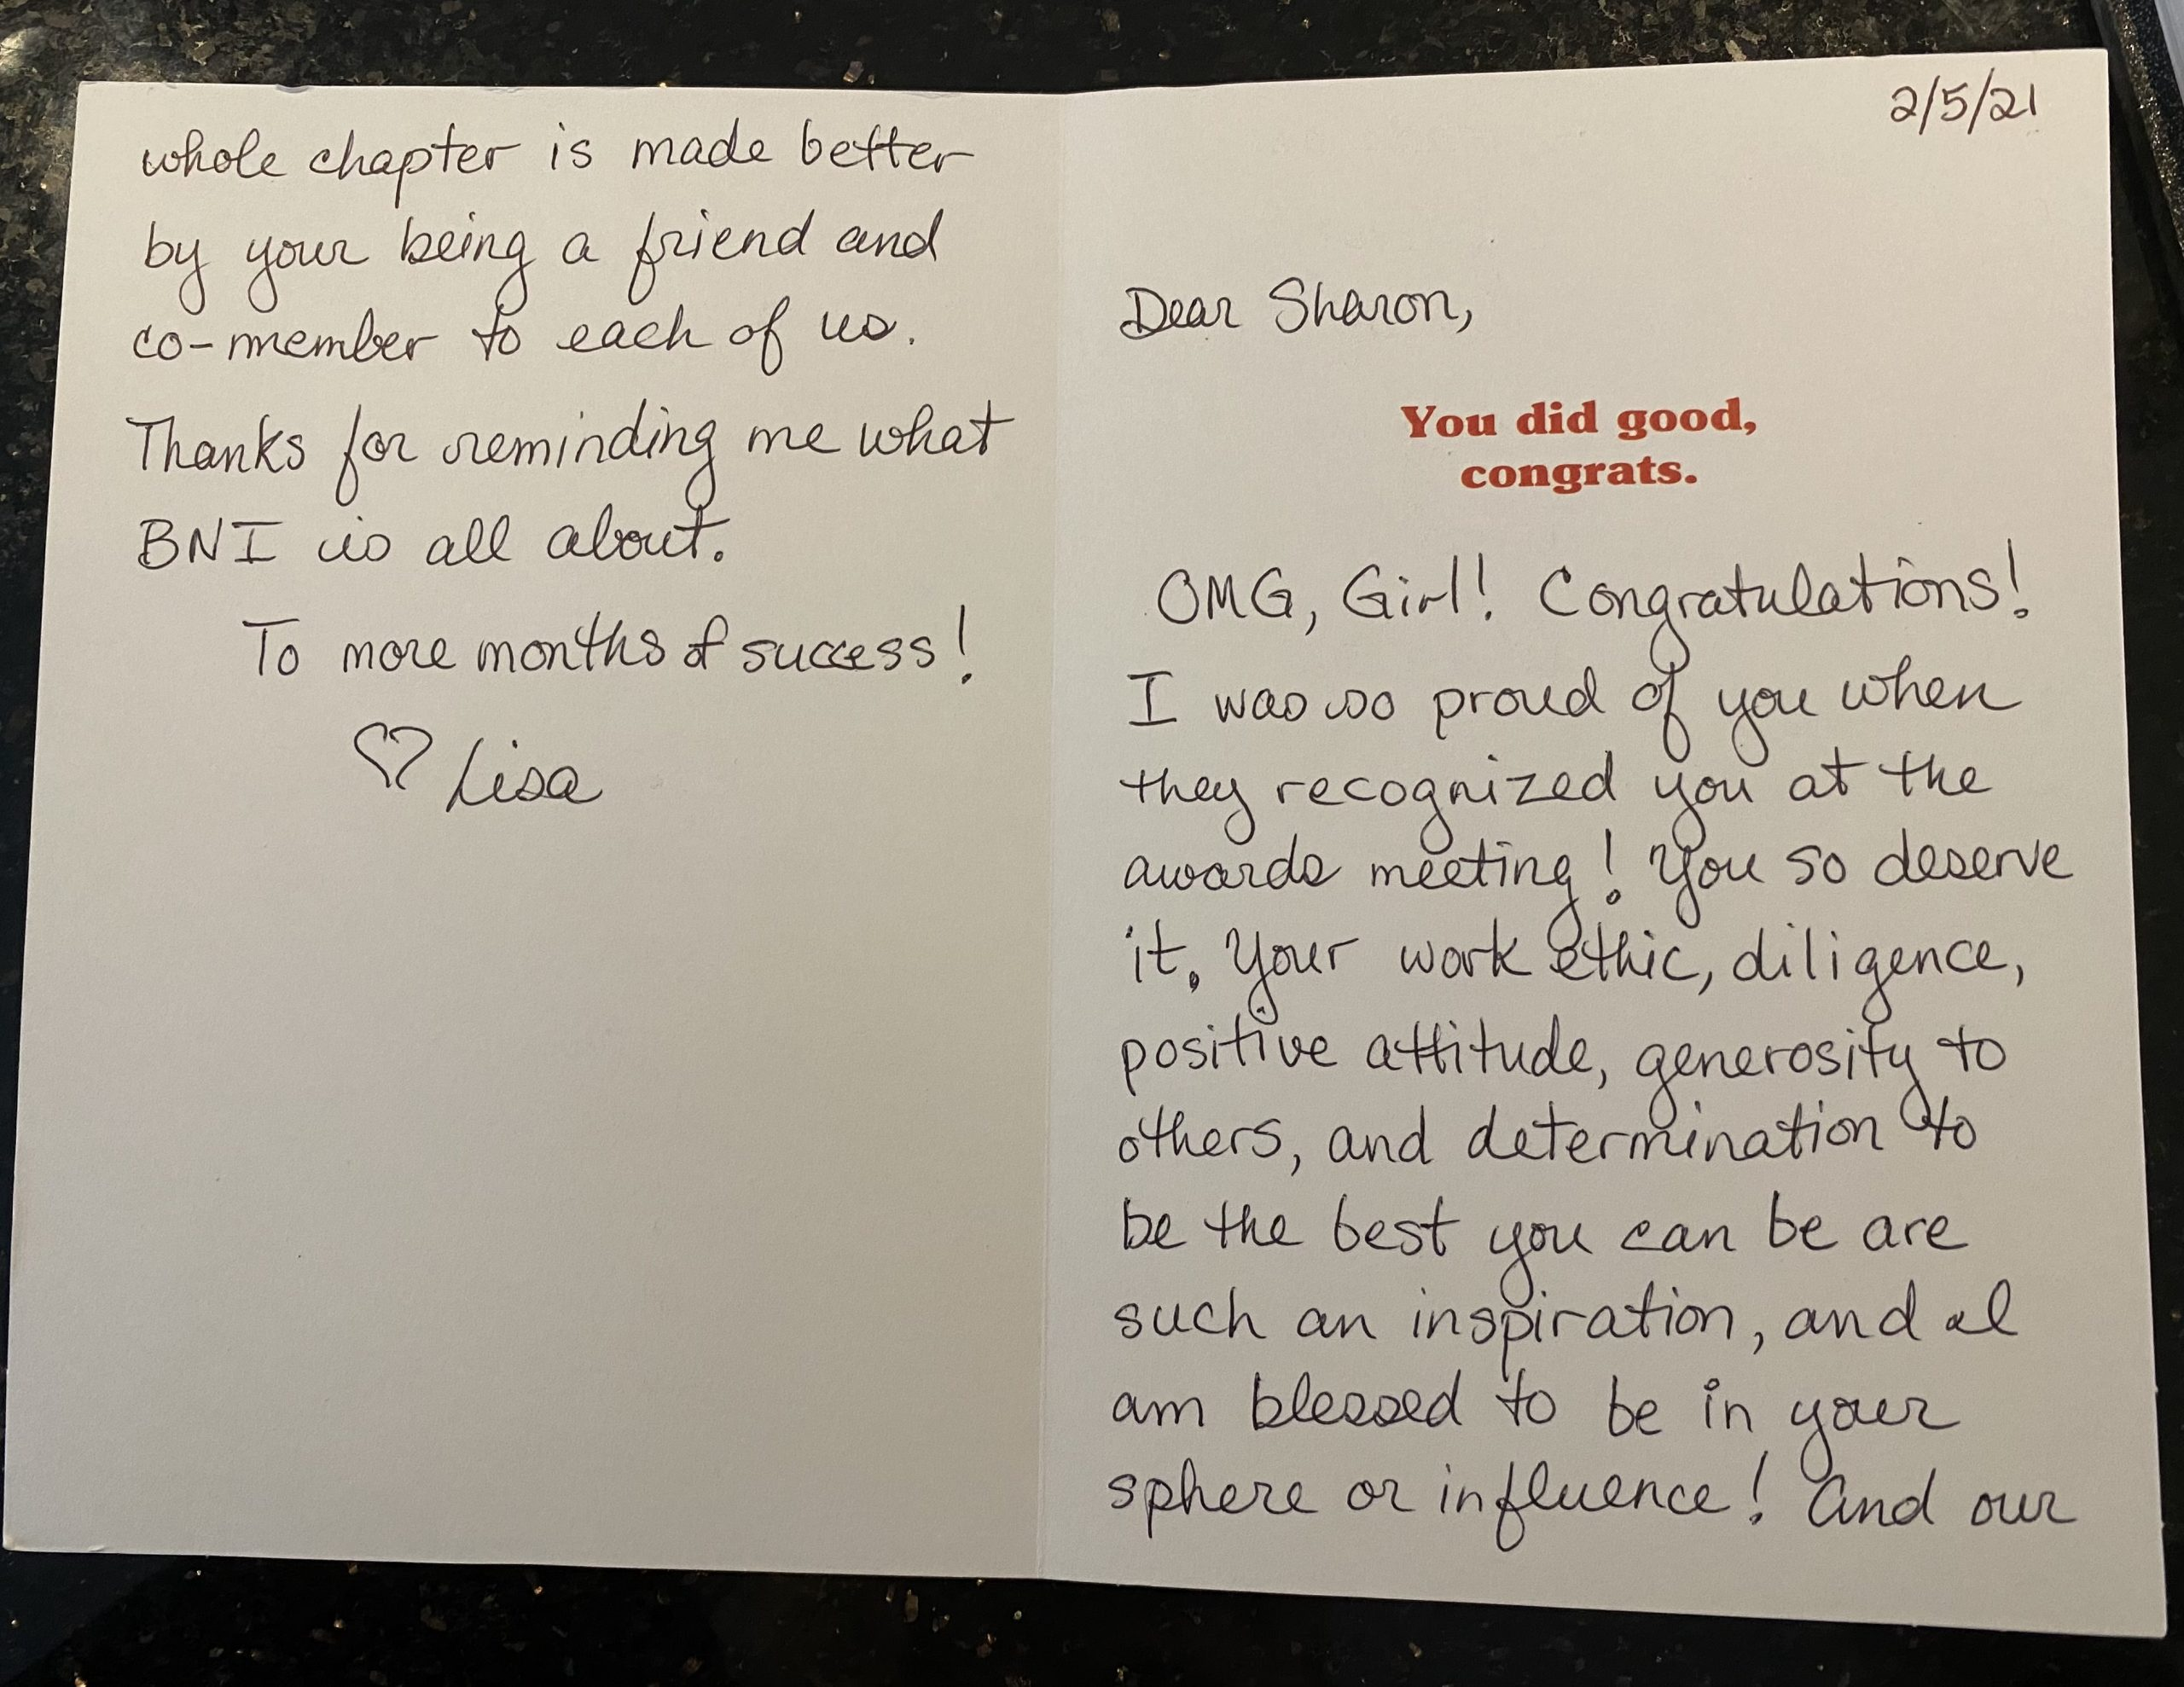 I'm beyond blown away and touched. Lisa, you're the sweetest. Thank you!